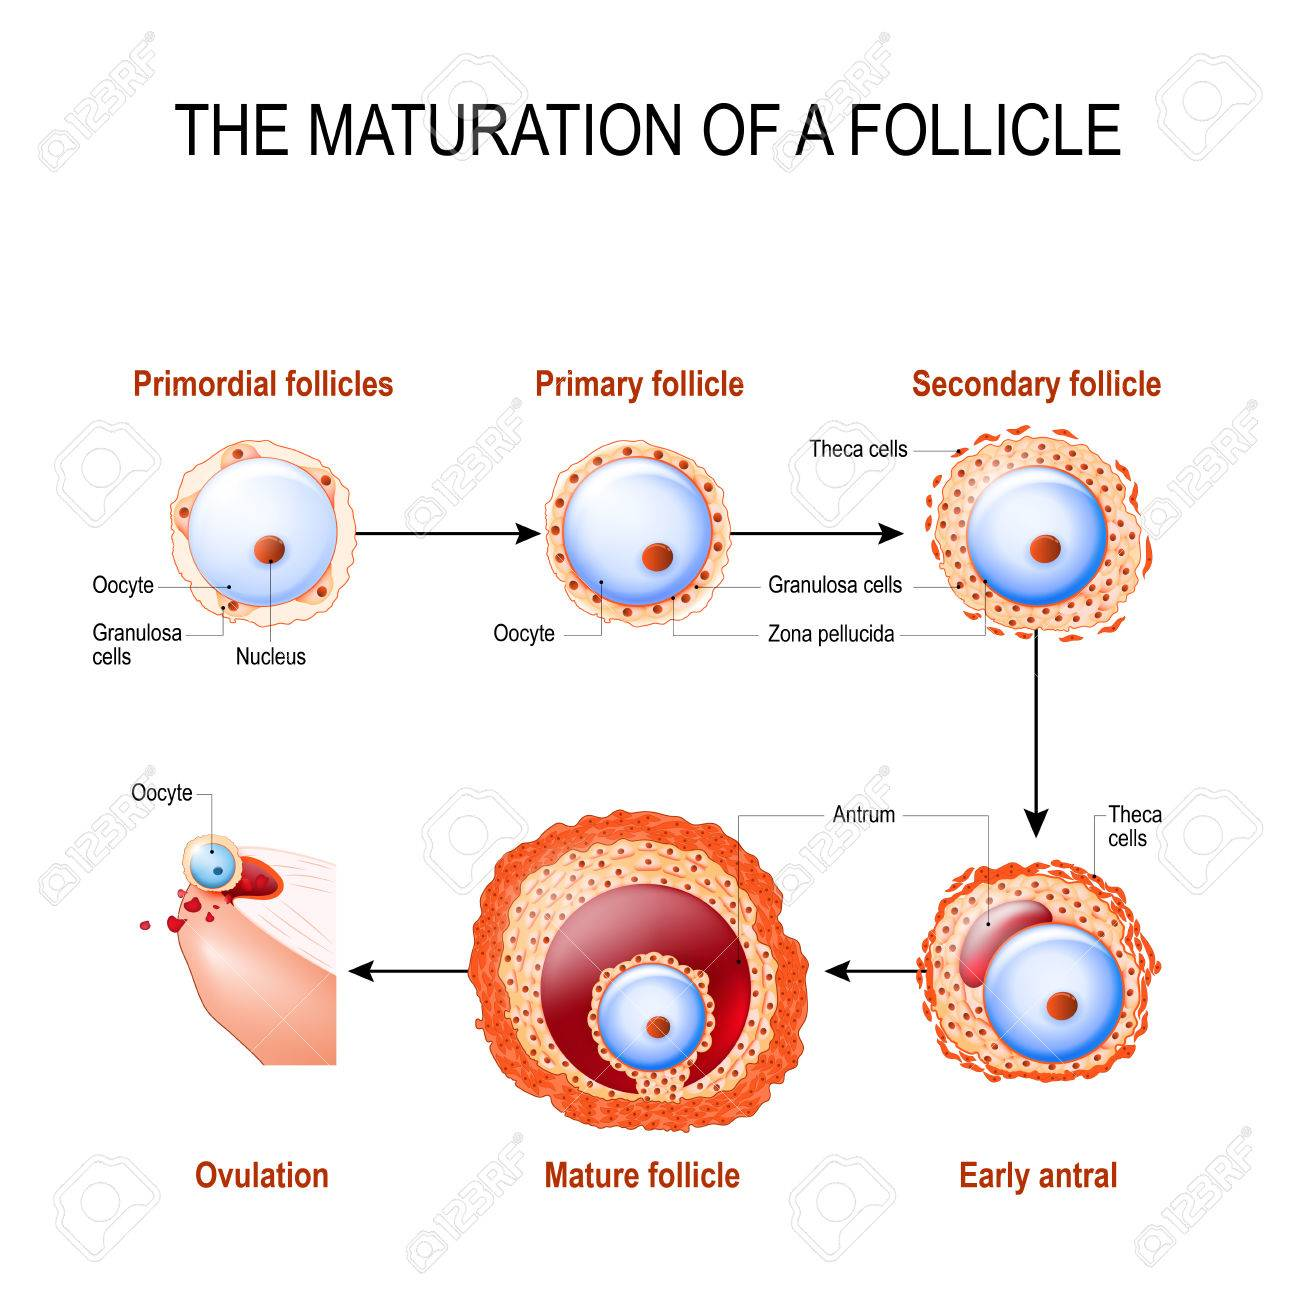 maturation of a follicle diagram of folliculogenesis royalty free